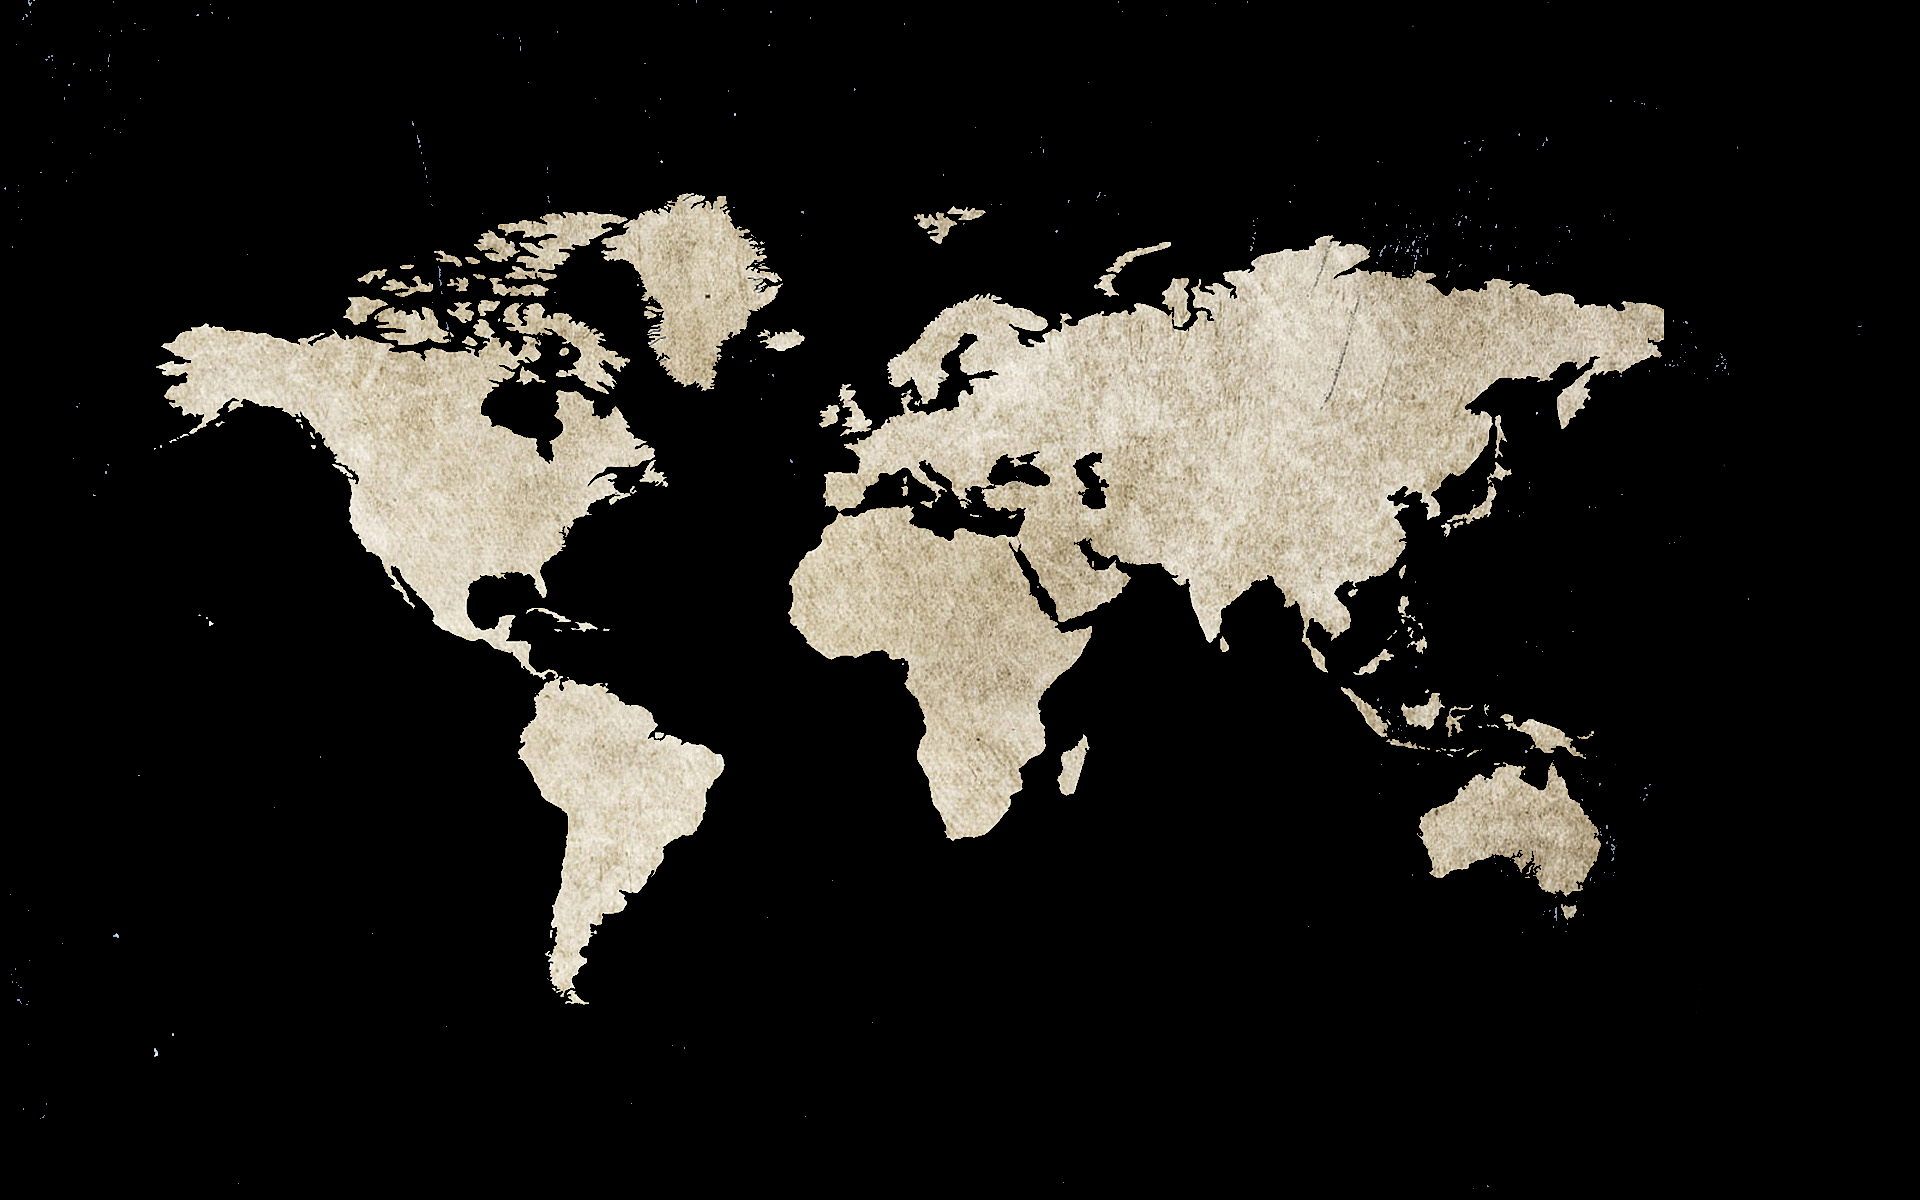 Wallpaper Map Design : Black earth map by sh design on deviantart